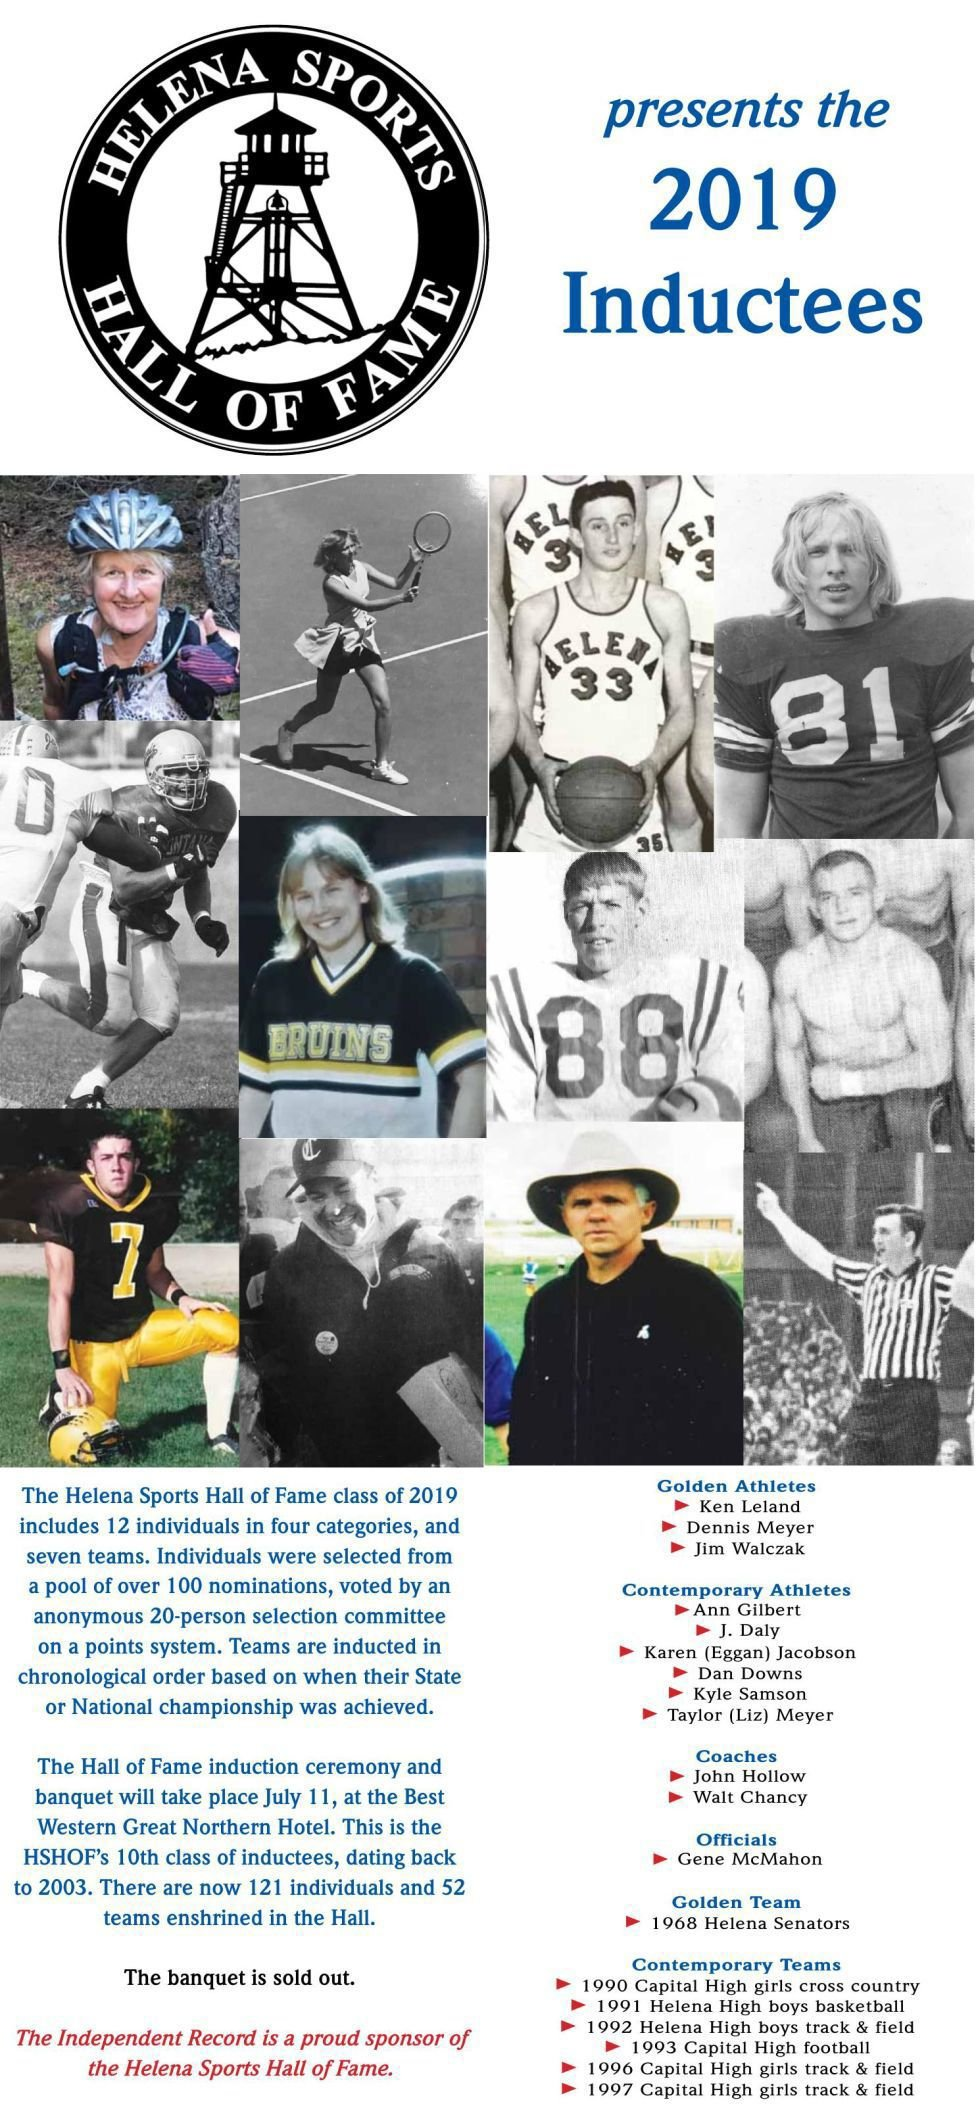 Helena Sports Hall of Fame 2019 inductees